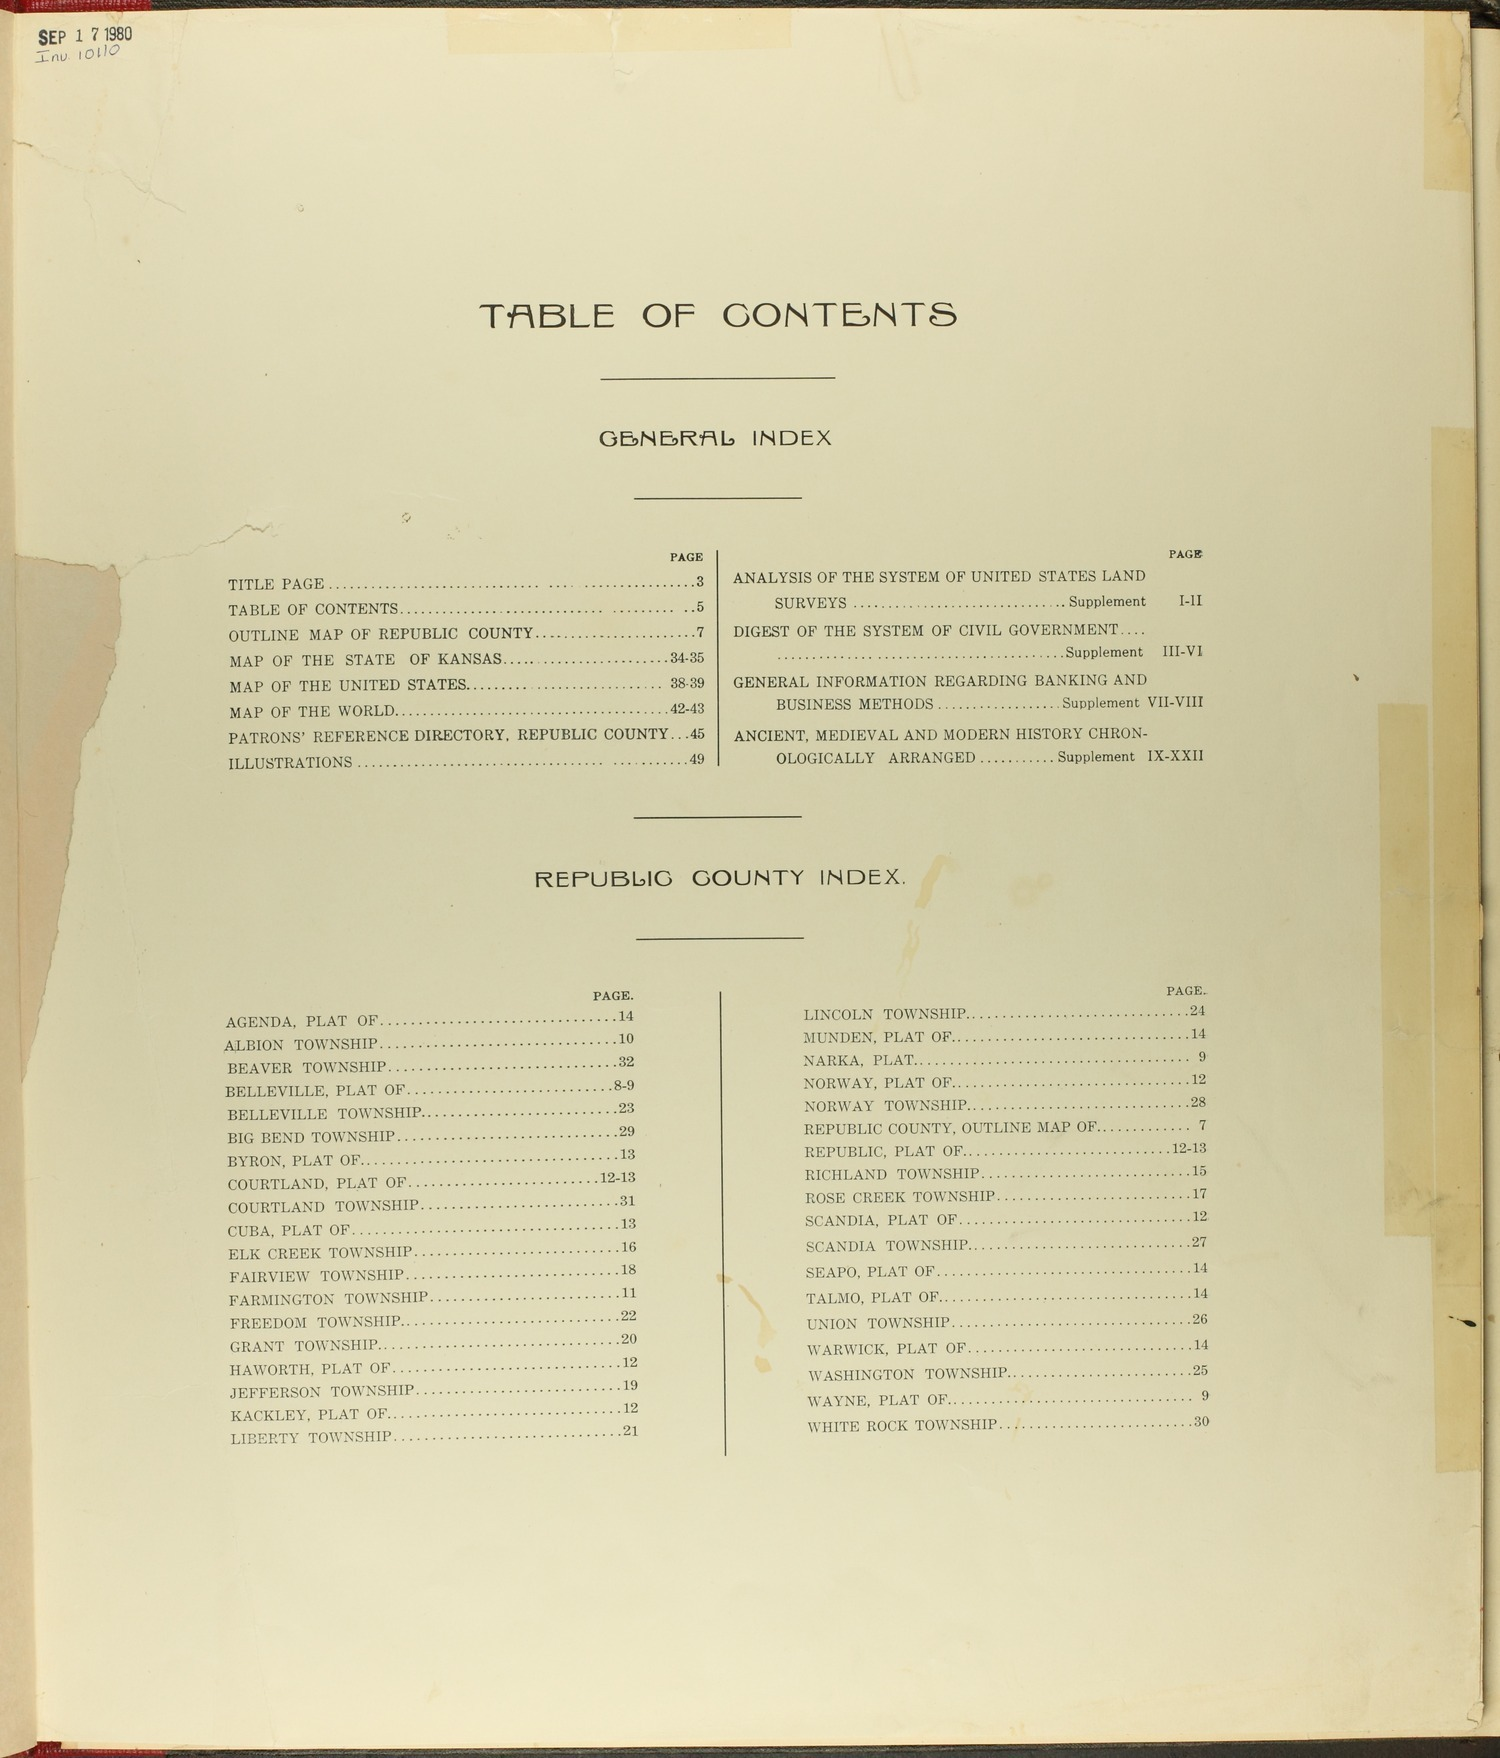 Standard atlas of Republic County, Kansas - Table of Contents